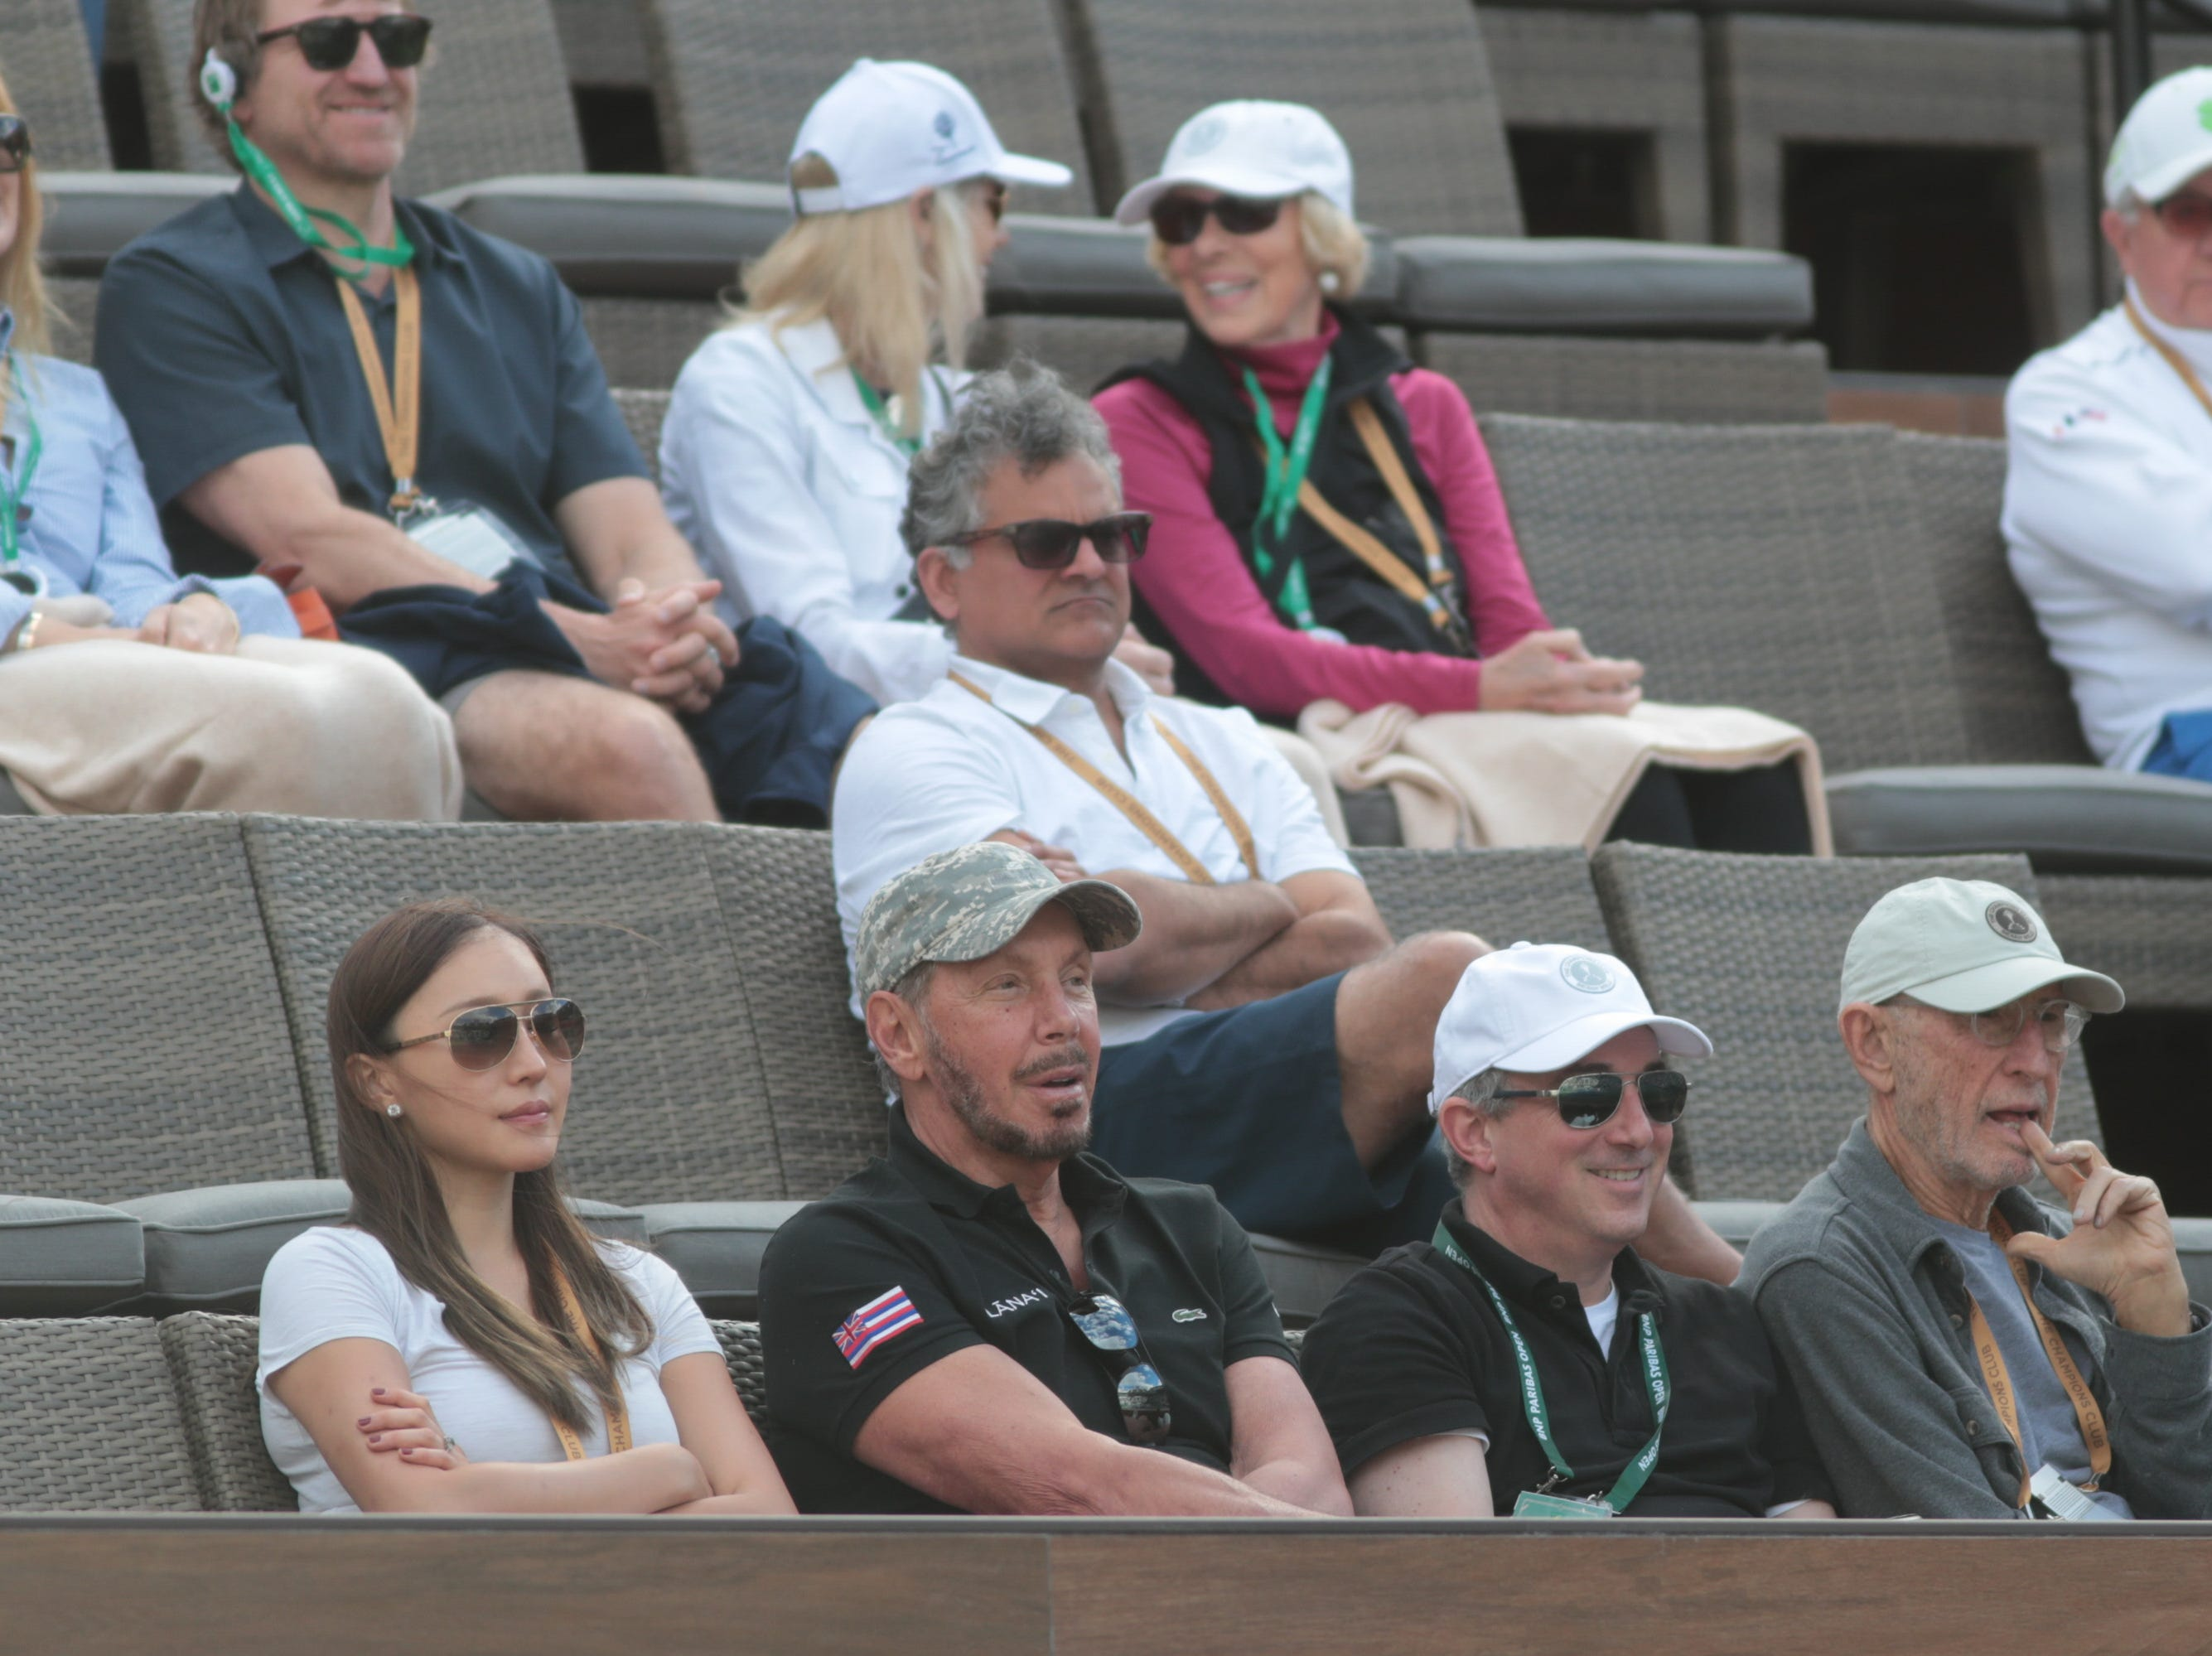 Larry Ellison watches a match between Sam Querrey and Matteo Berrettini at the BNP Paribas Open, Indian Wells, Calif., Thursday, March 7, 2019.